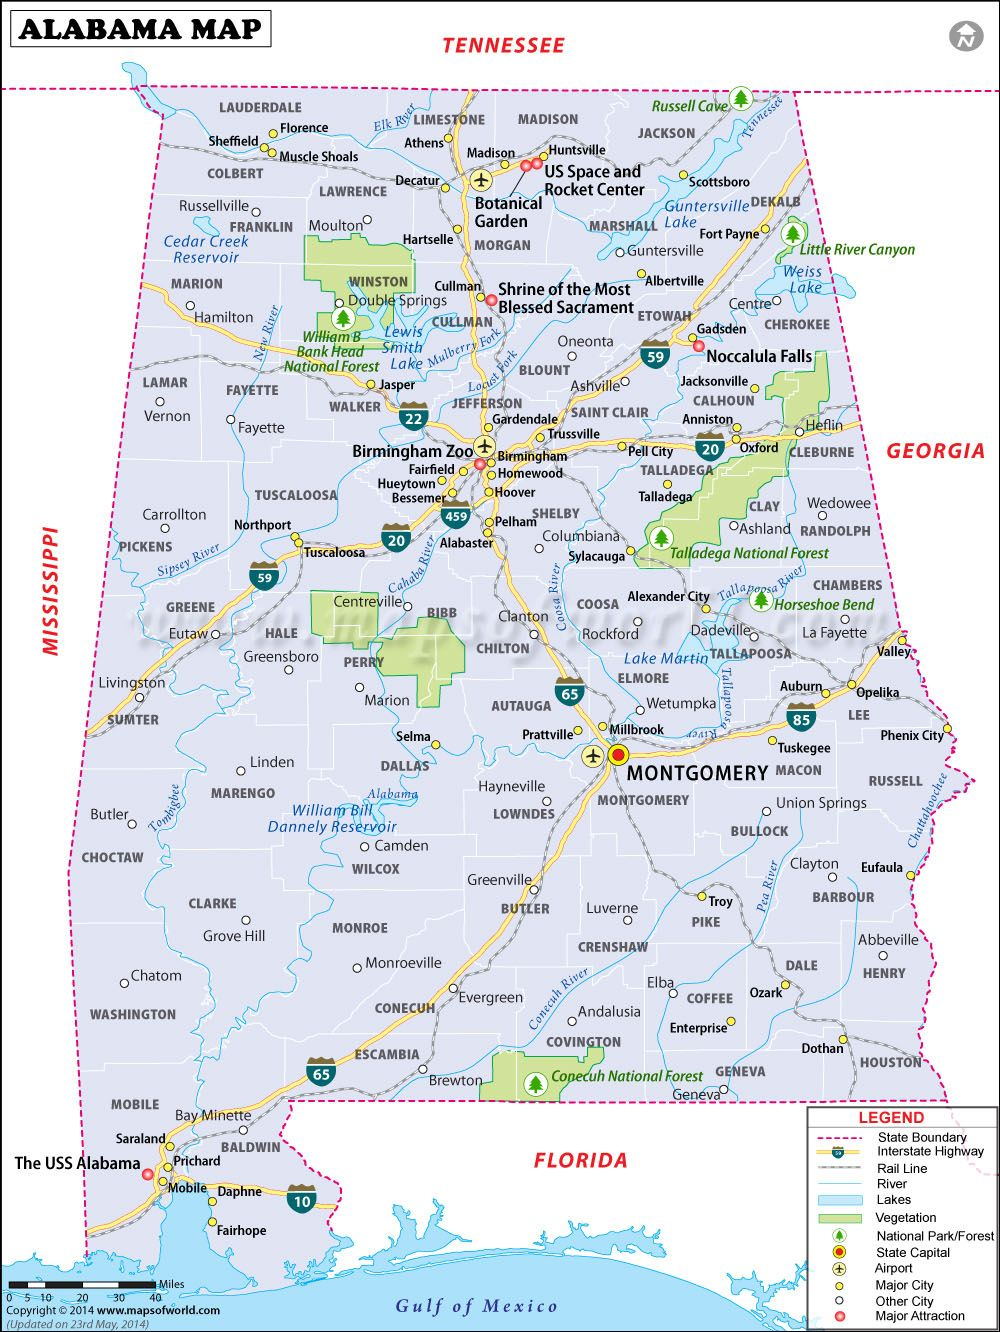 Alabama United States Map.Alabama Map For Free Download Printable Map Of Alabama Known As